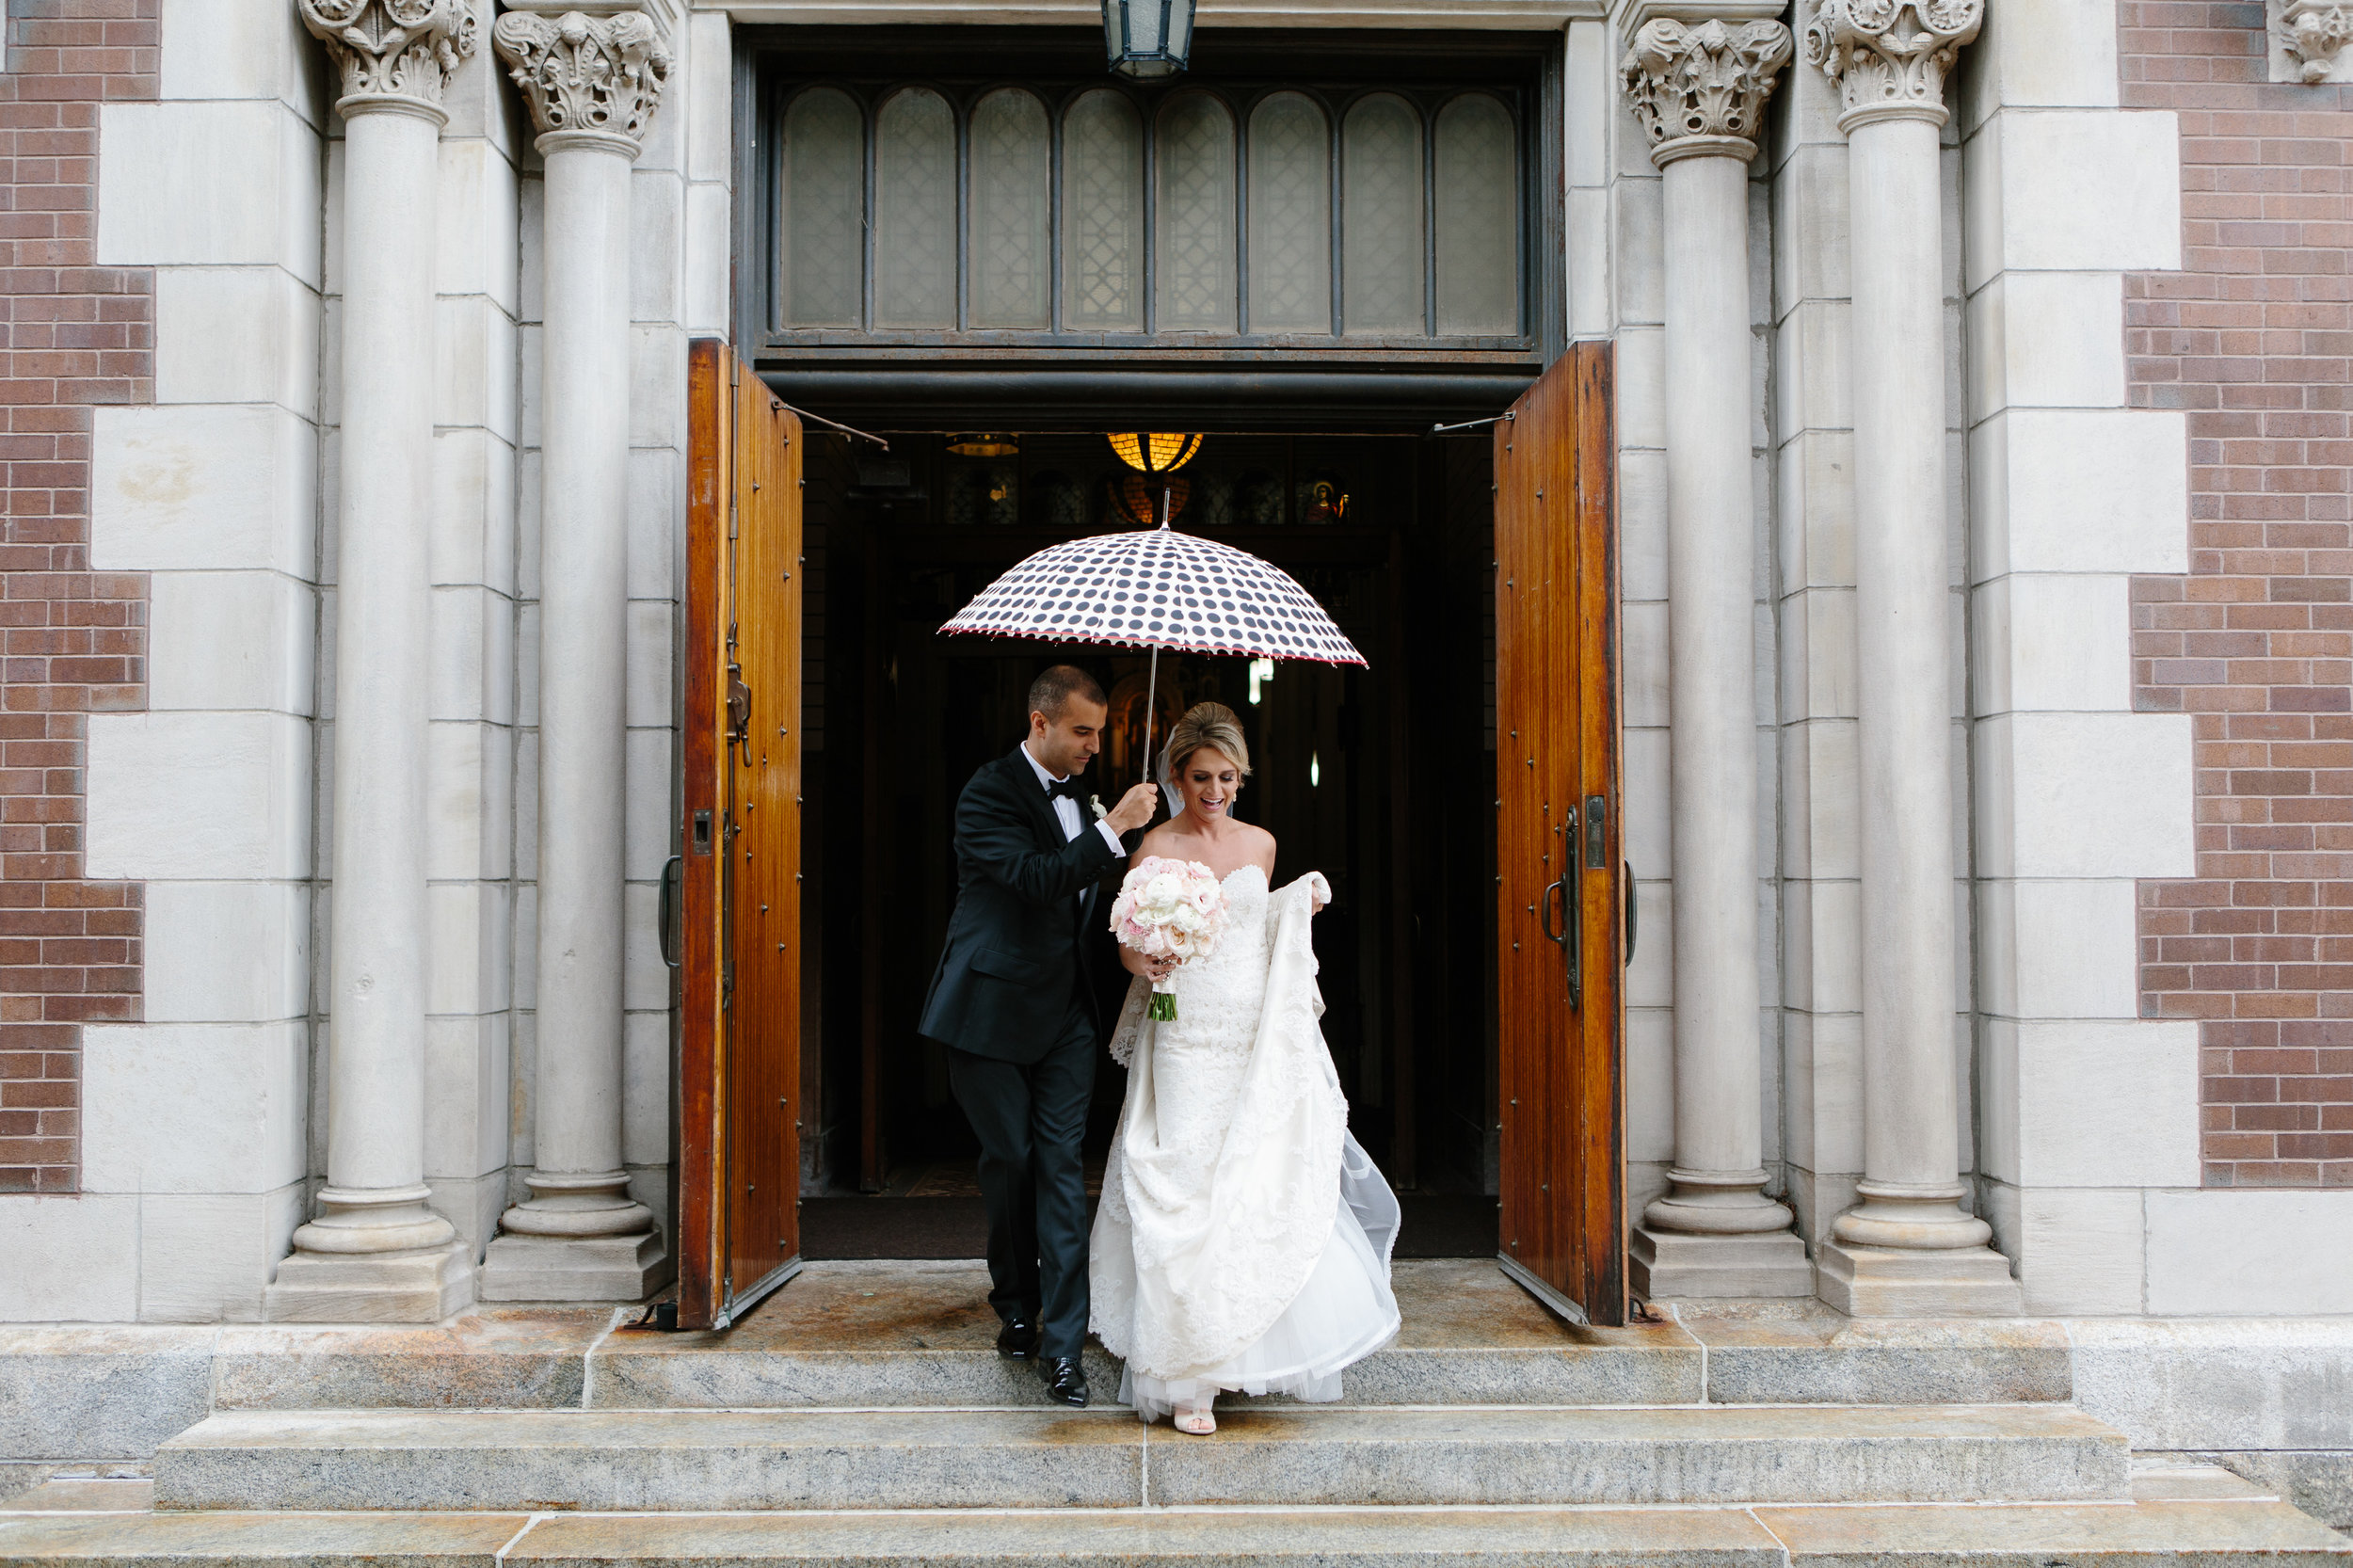 Nicodem Creative_Wilson Wedding_Germania Place Chicago Blog-17.jpg